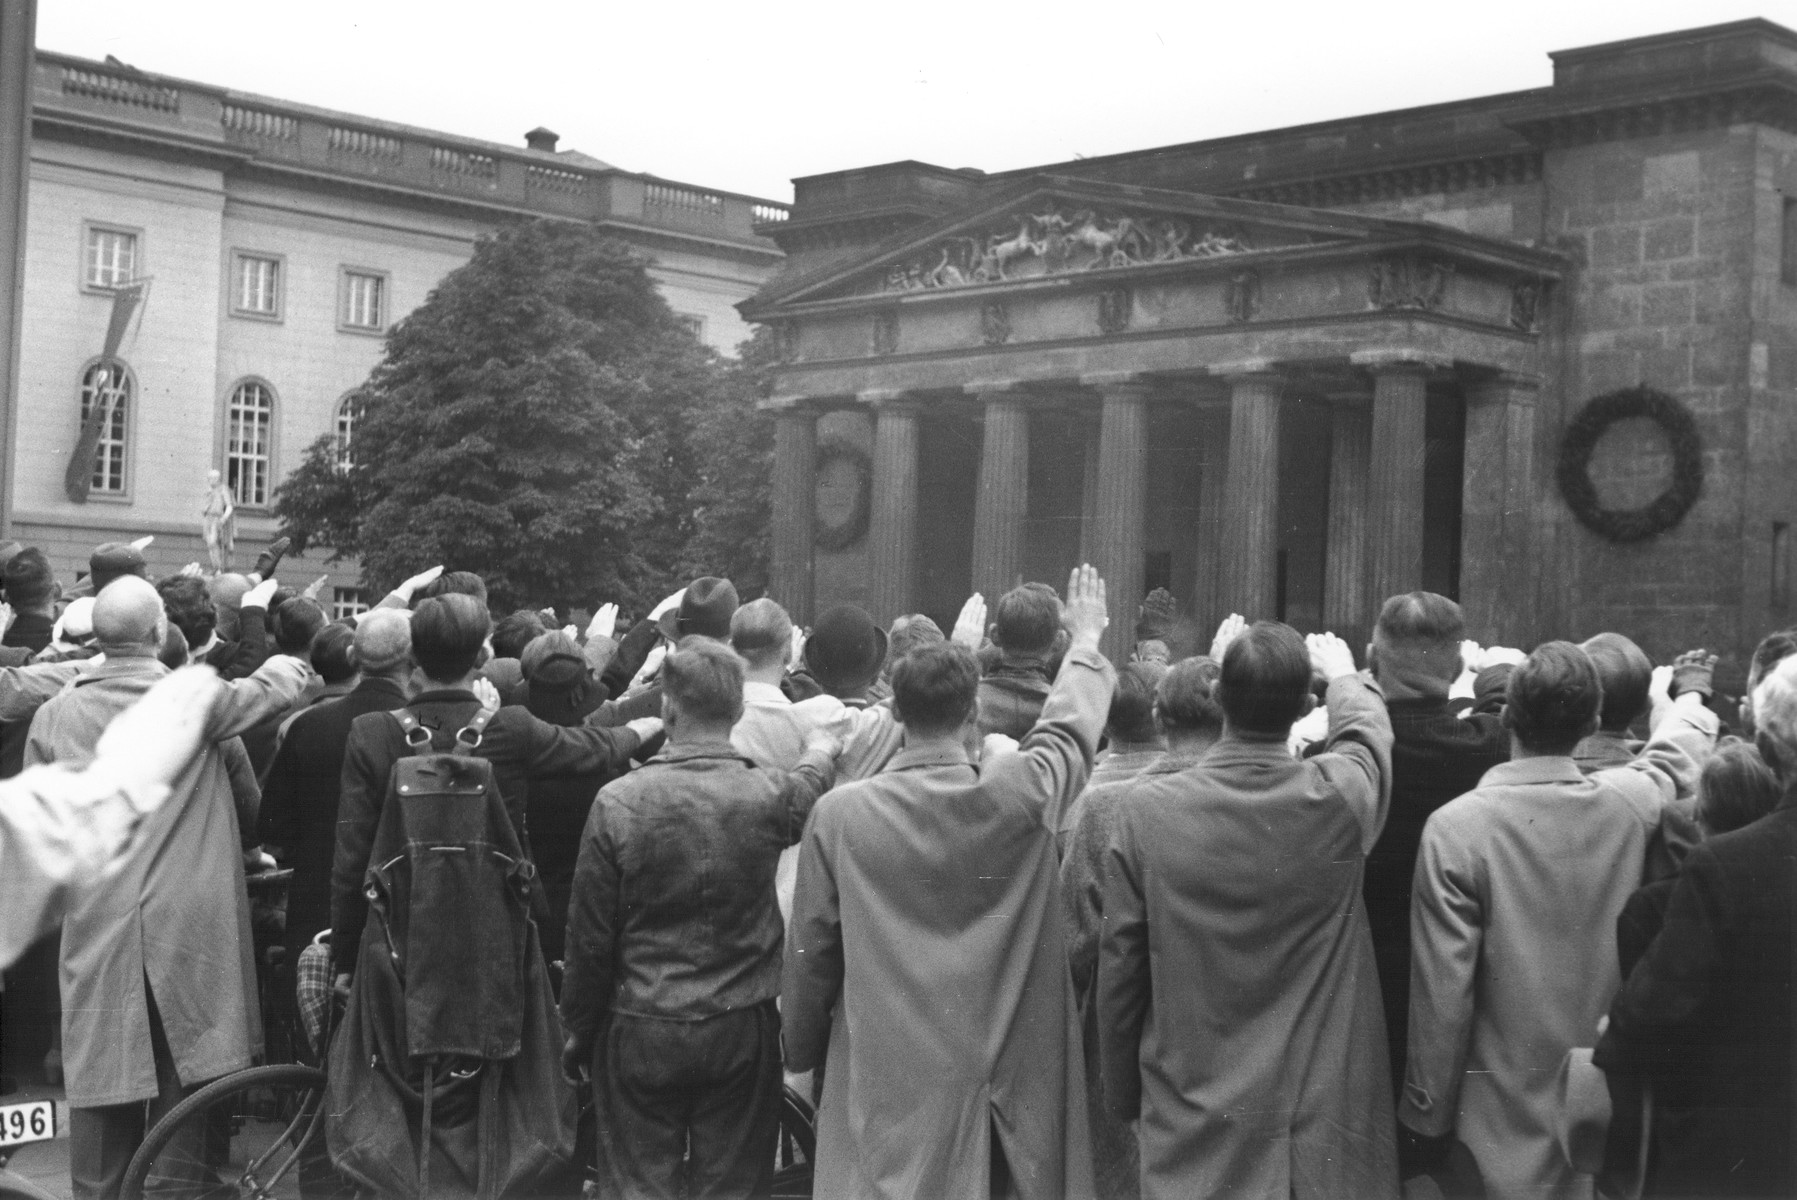 German spectators at a political rally in front of a war memorial raise their arms in the Nazi salute.